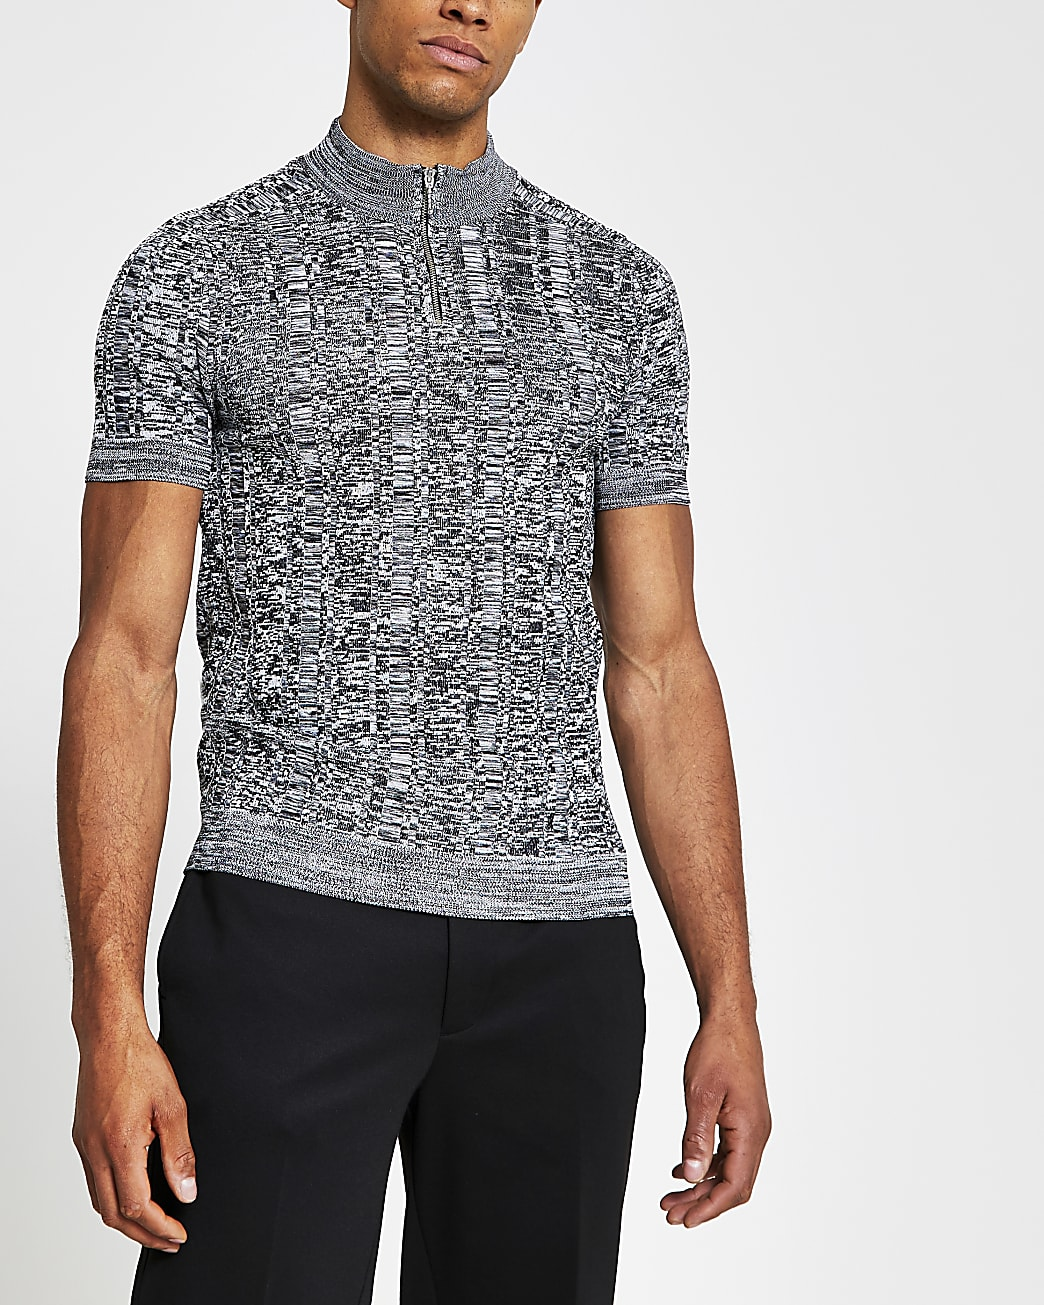 Grey knitted zip muscle fit turtle neck top